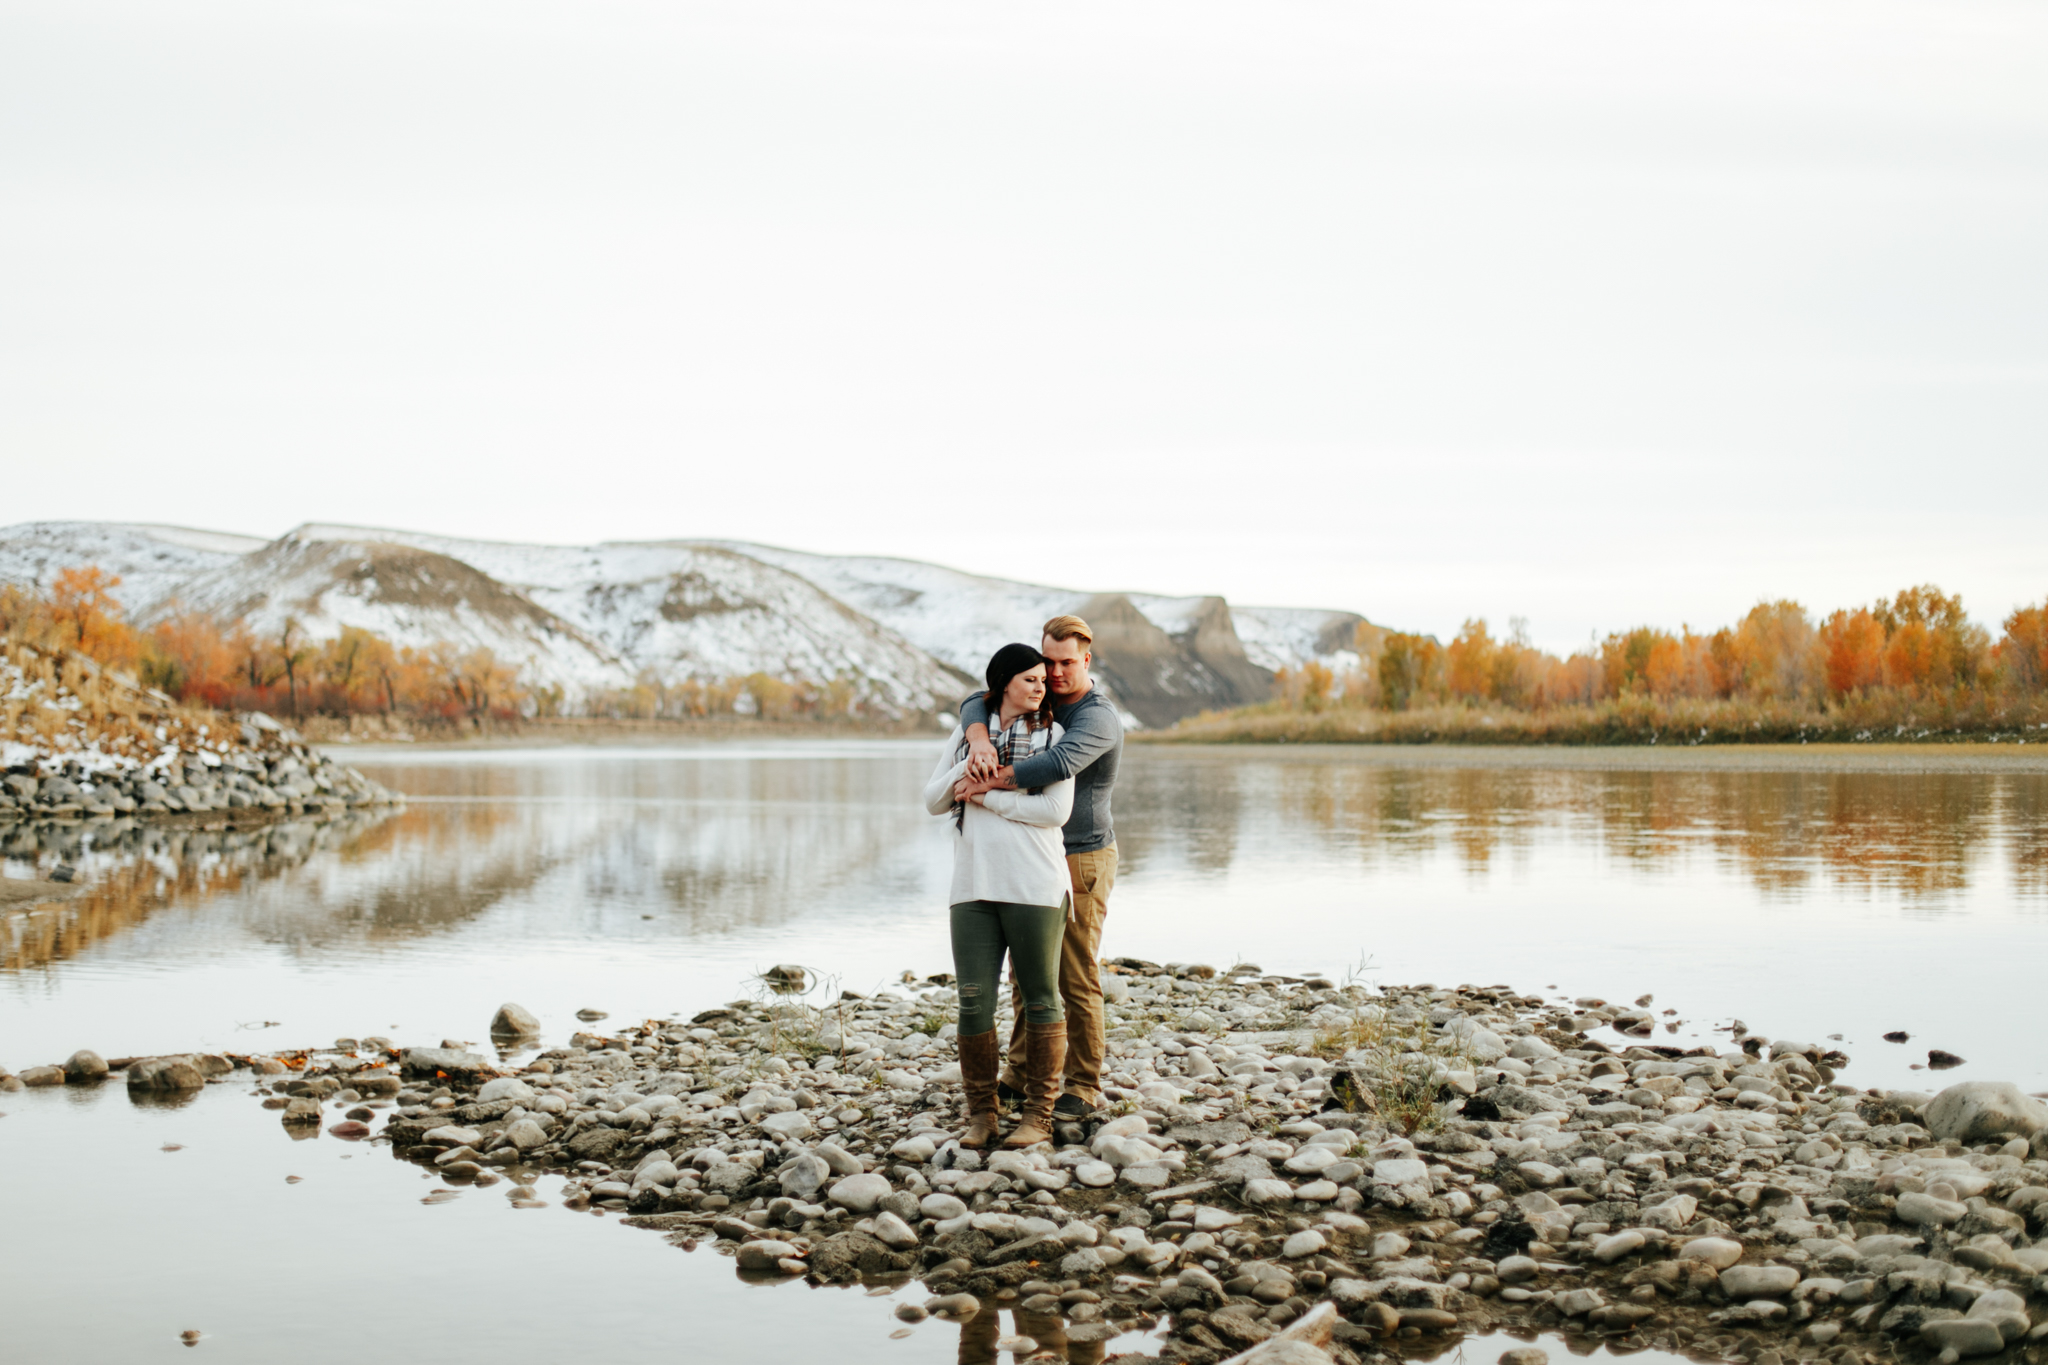 lethbridge-photographer-love-and-be-loved-photography-christy-bryan-fall-autumn-engagement-photo-image-picture-36.jpg